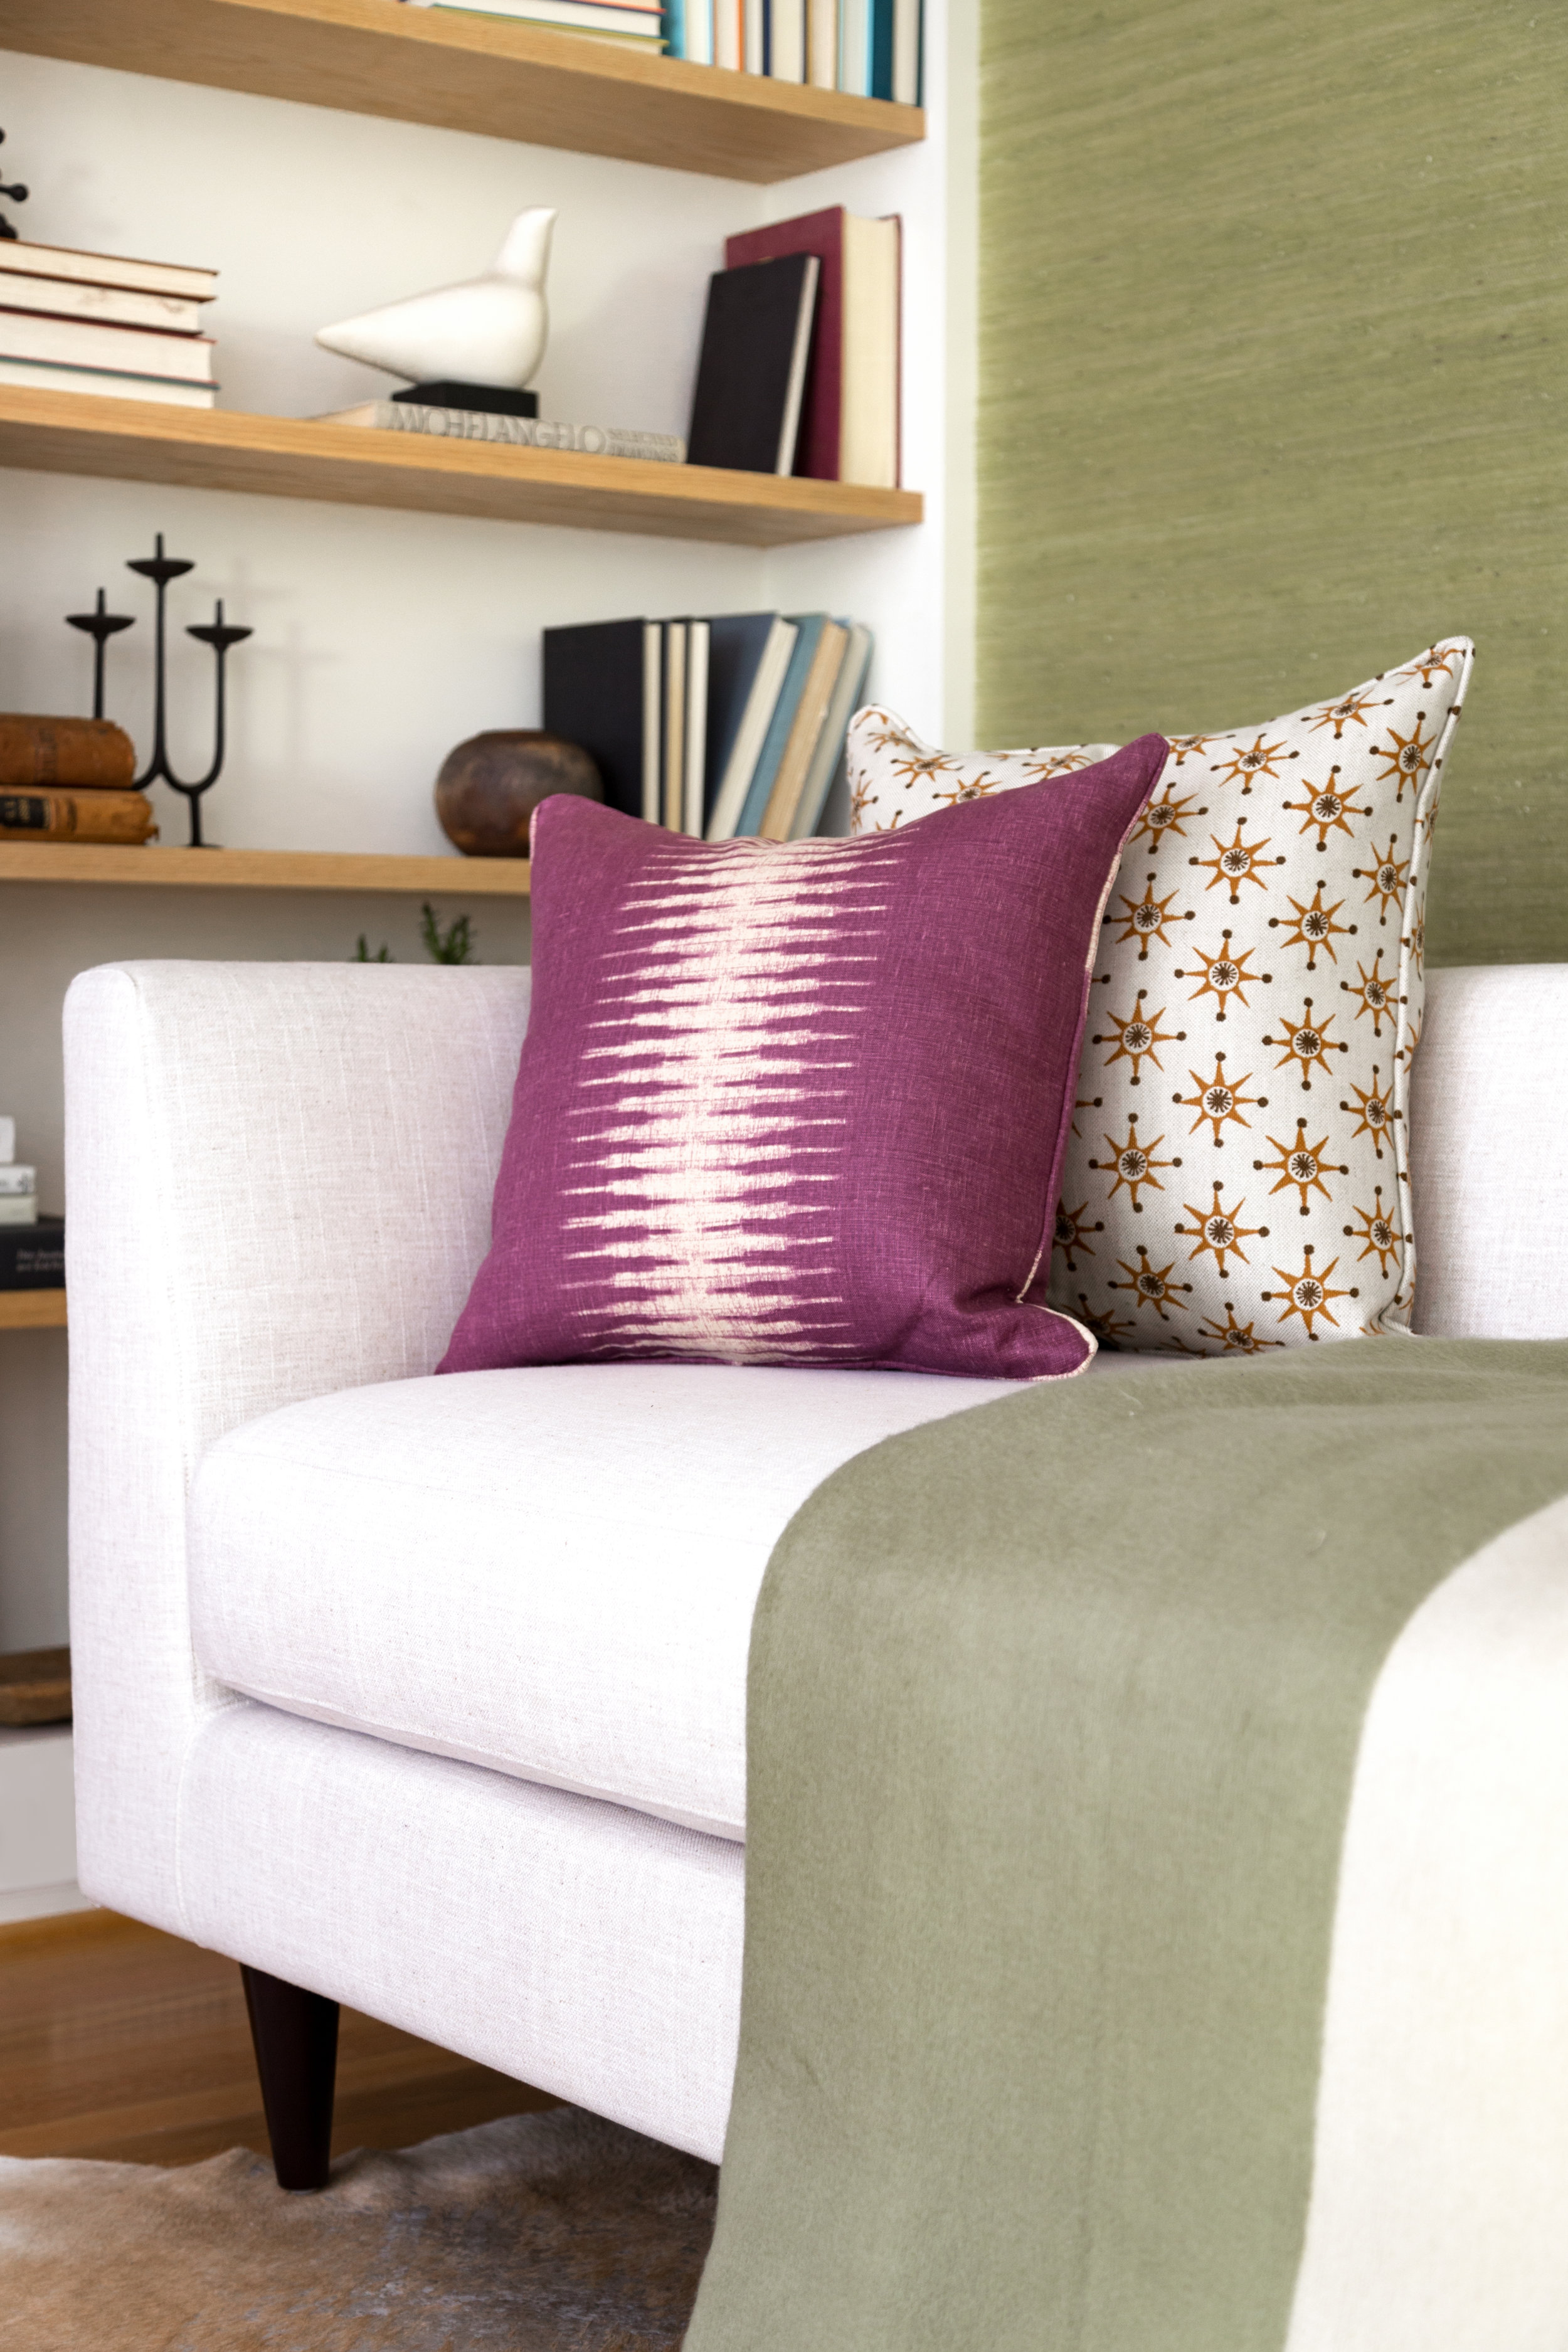 Beautiful custom pillows bring focus against a neutral backdrop.